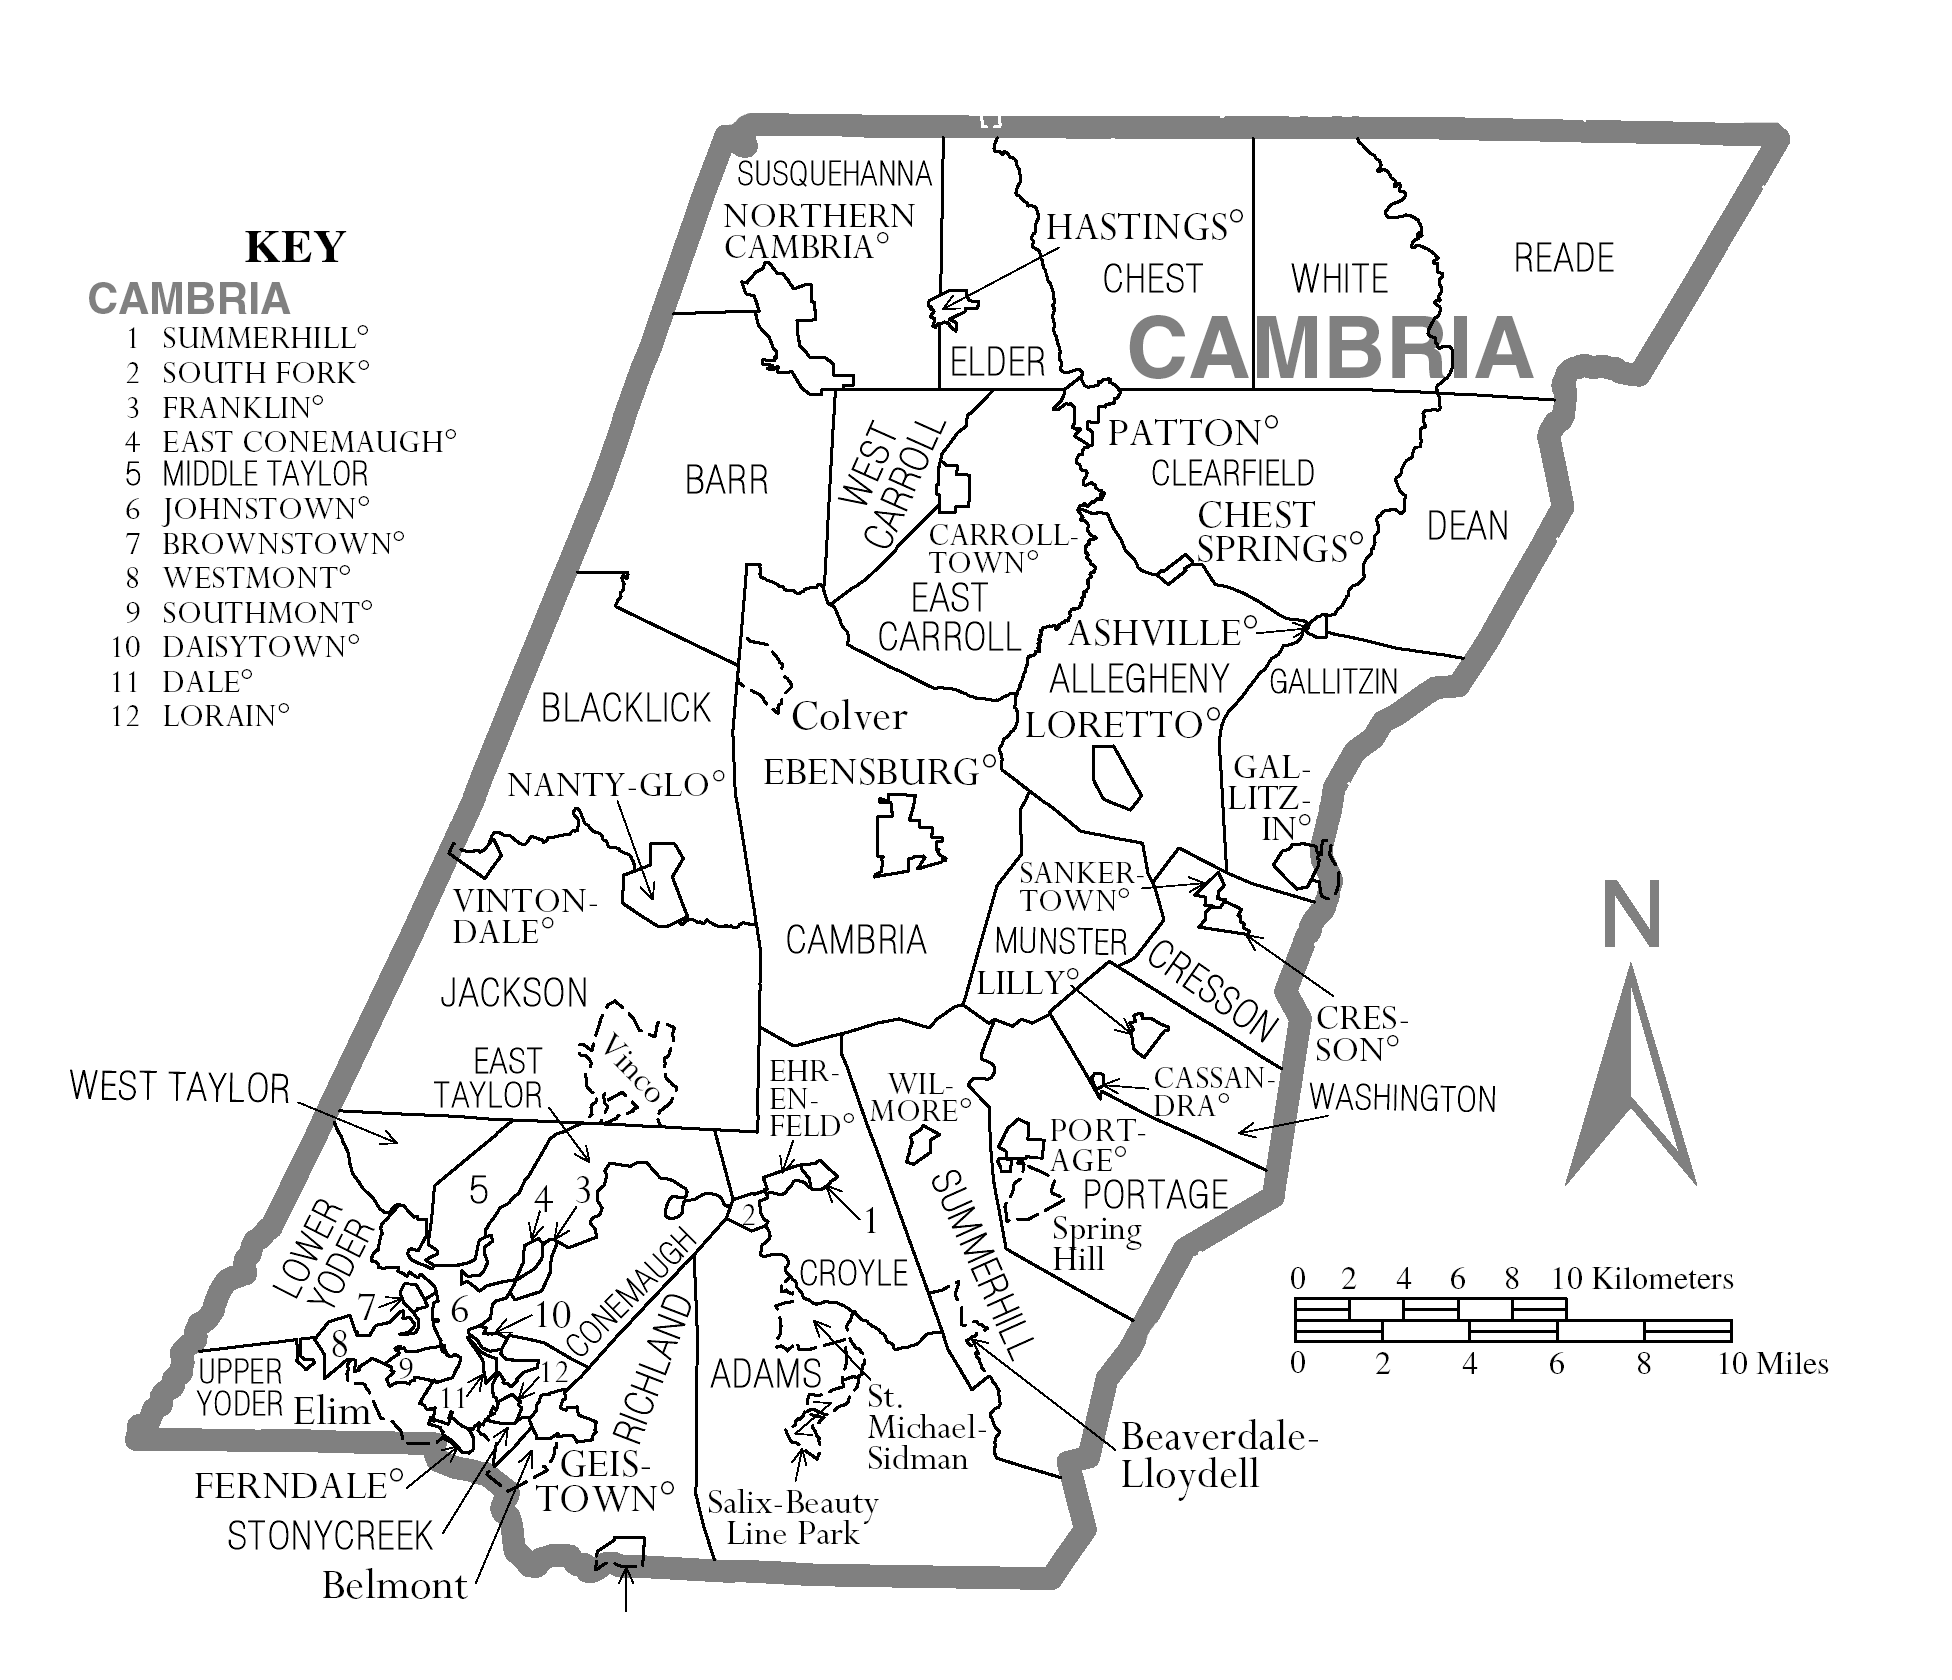 File:Map of Cambria County, Pennsylvania.png - Wikimedia Commons on fallingwater pa map, ghost town trail pa map, cambria city map, chester county, red land pa map, summerhill pa map, bucks county, lancaster county, mt. hermon map, johnstown region map, somerset county, mount davis pa map, delaware county, northern pa road map, erie county, jefferson county, pennsylvania map, white township pa map, chester co pa map, bedford county, cambria city pa, indiana county, schuylkill haven pa map, berks county interactive map, blair county, allegheny county, westmoreland county, cambria township pa map, butler county, beaver county, fulton county, south fork pa map, bucks co pa map, northern virginia dc maryland map, fayette county, crawford county, franklin county, cumberland county, brownstown pa map,